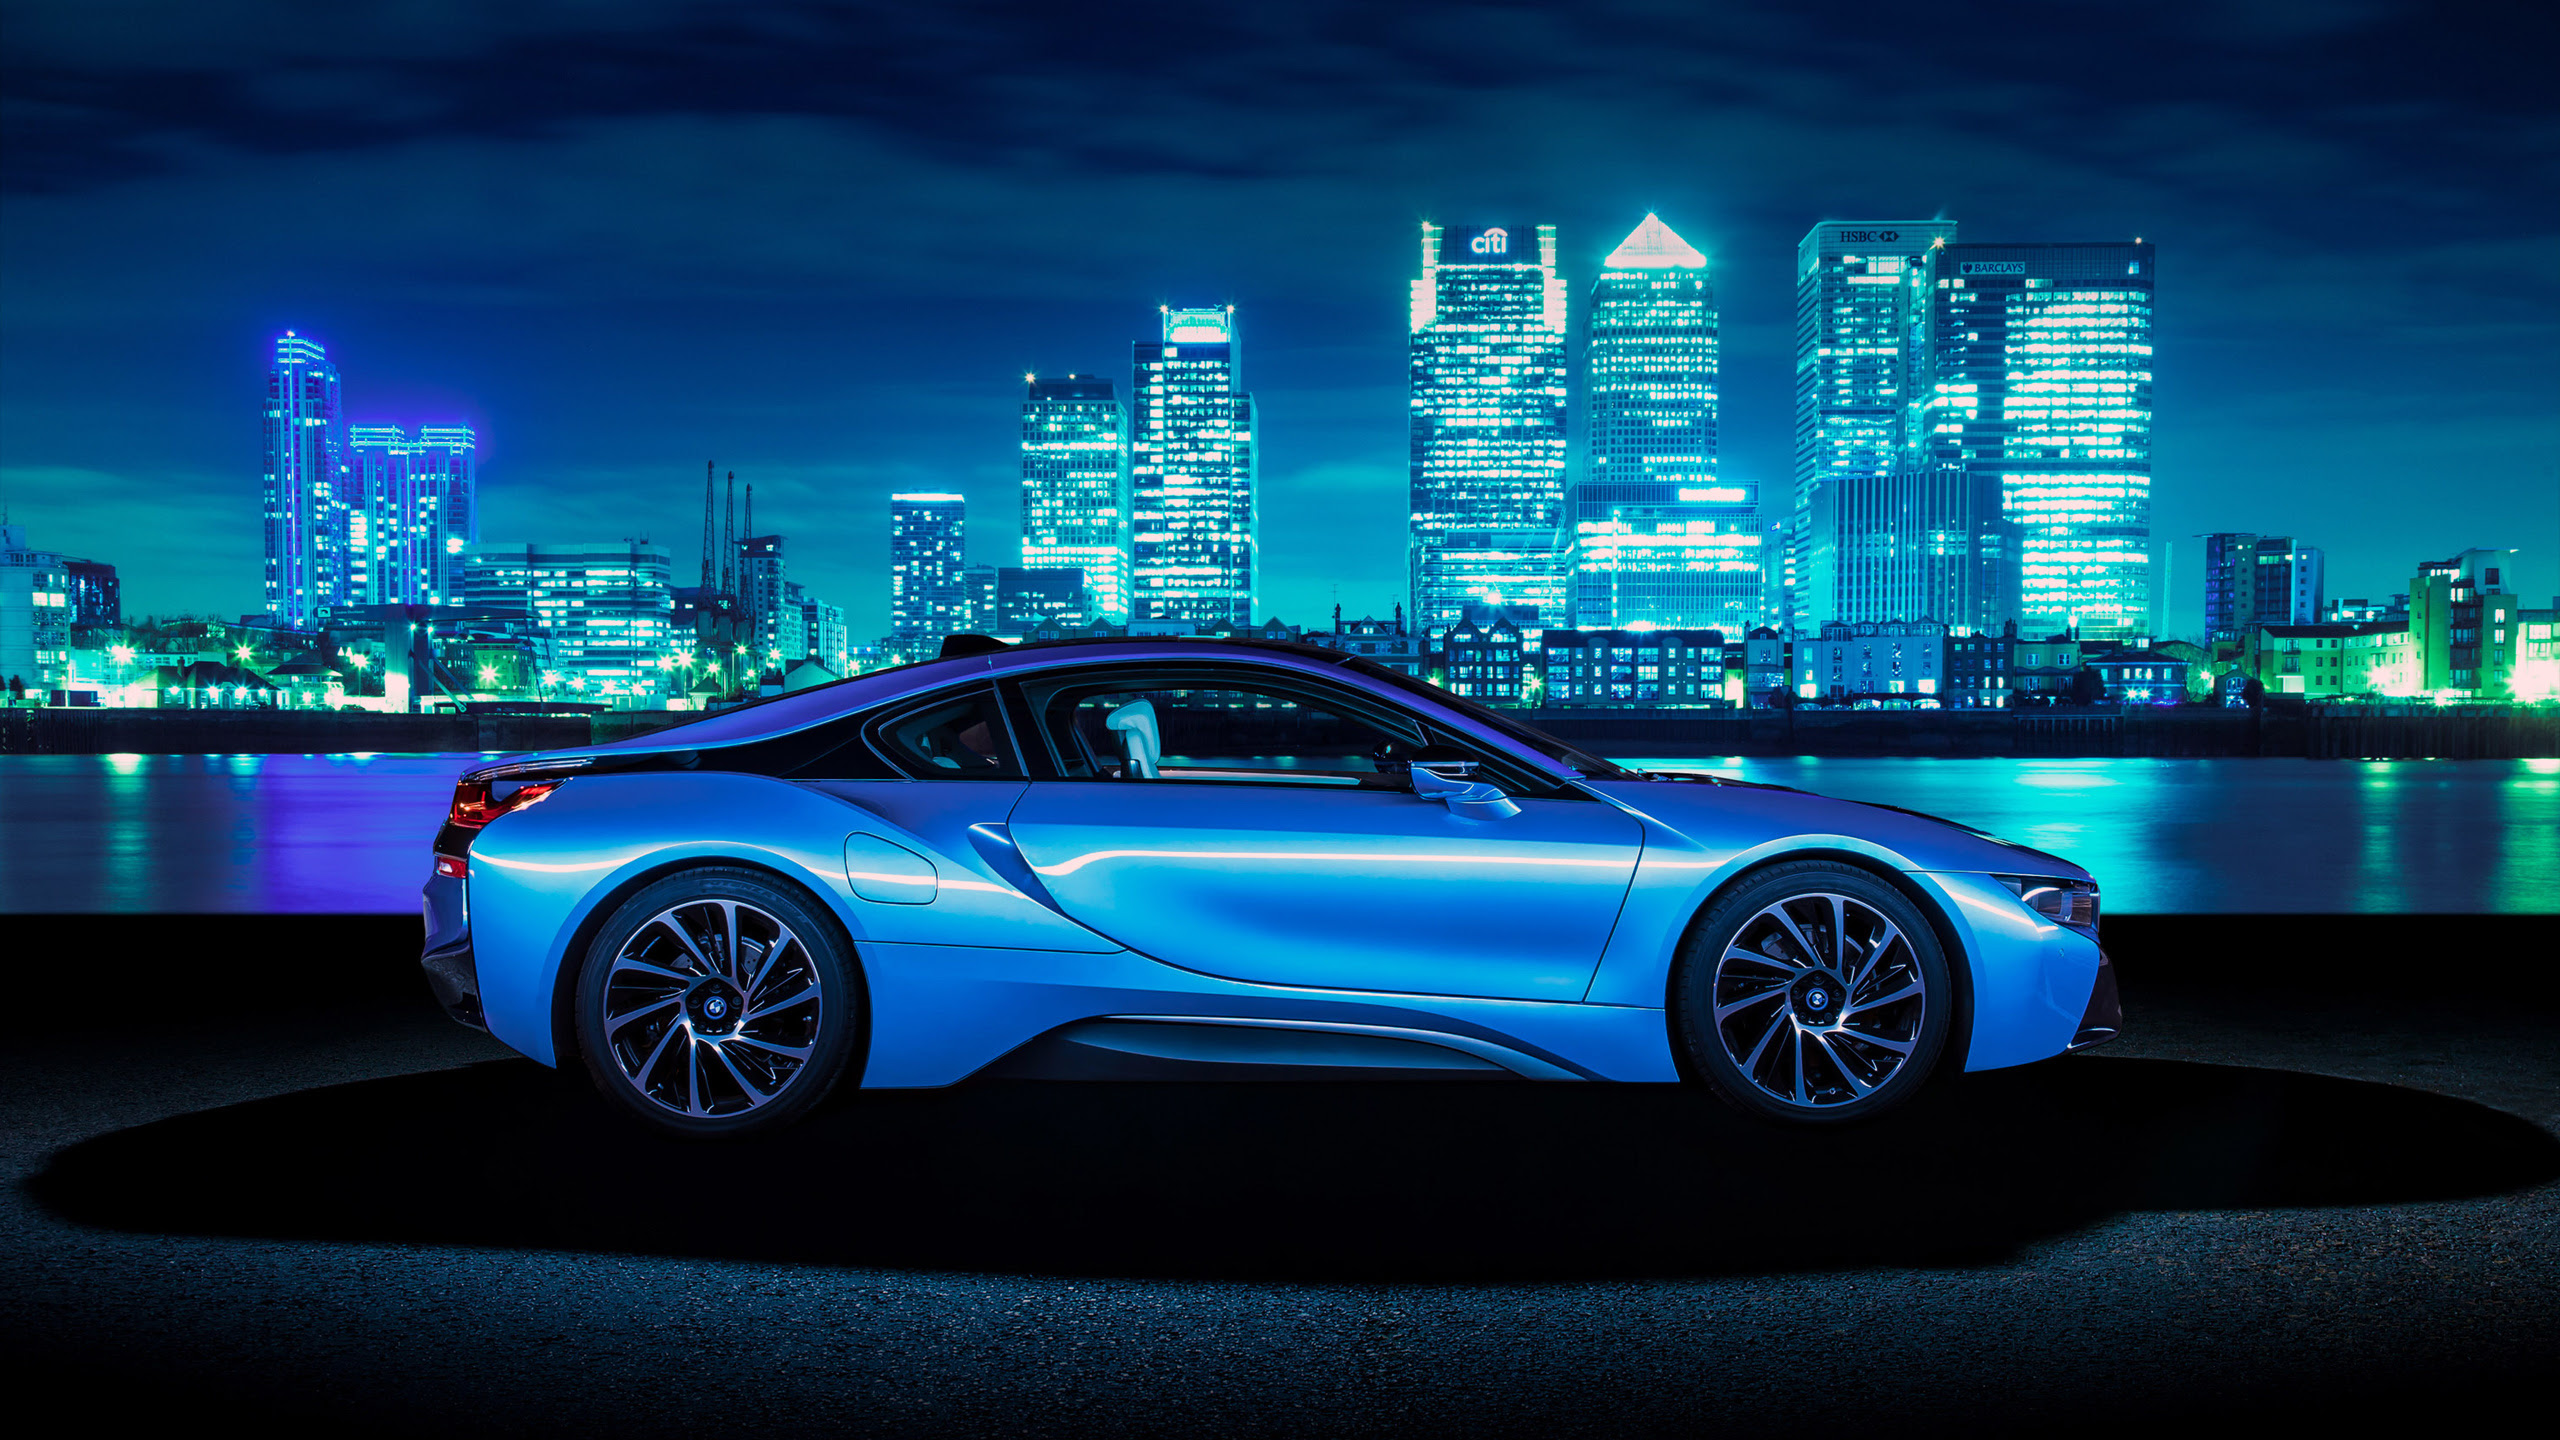 Bmw I Hd Wallpapers Backgrounds Wallpaper Abyss Bmw I Wallpaper Hd 2560x1440